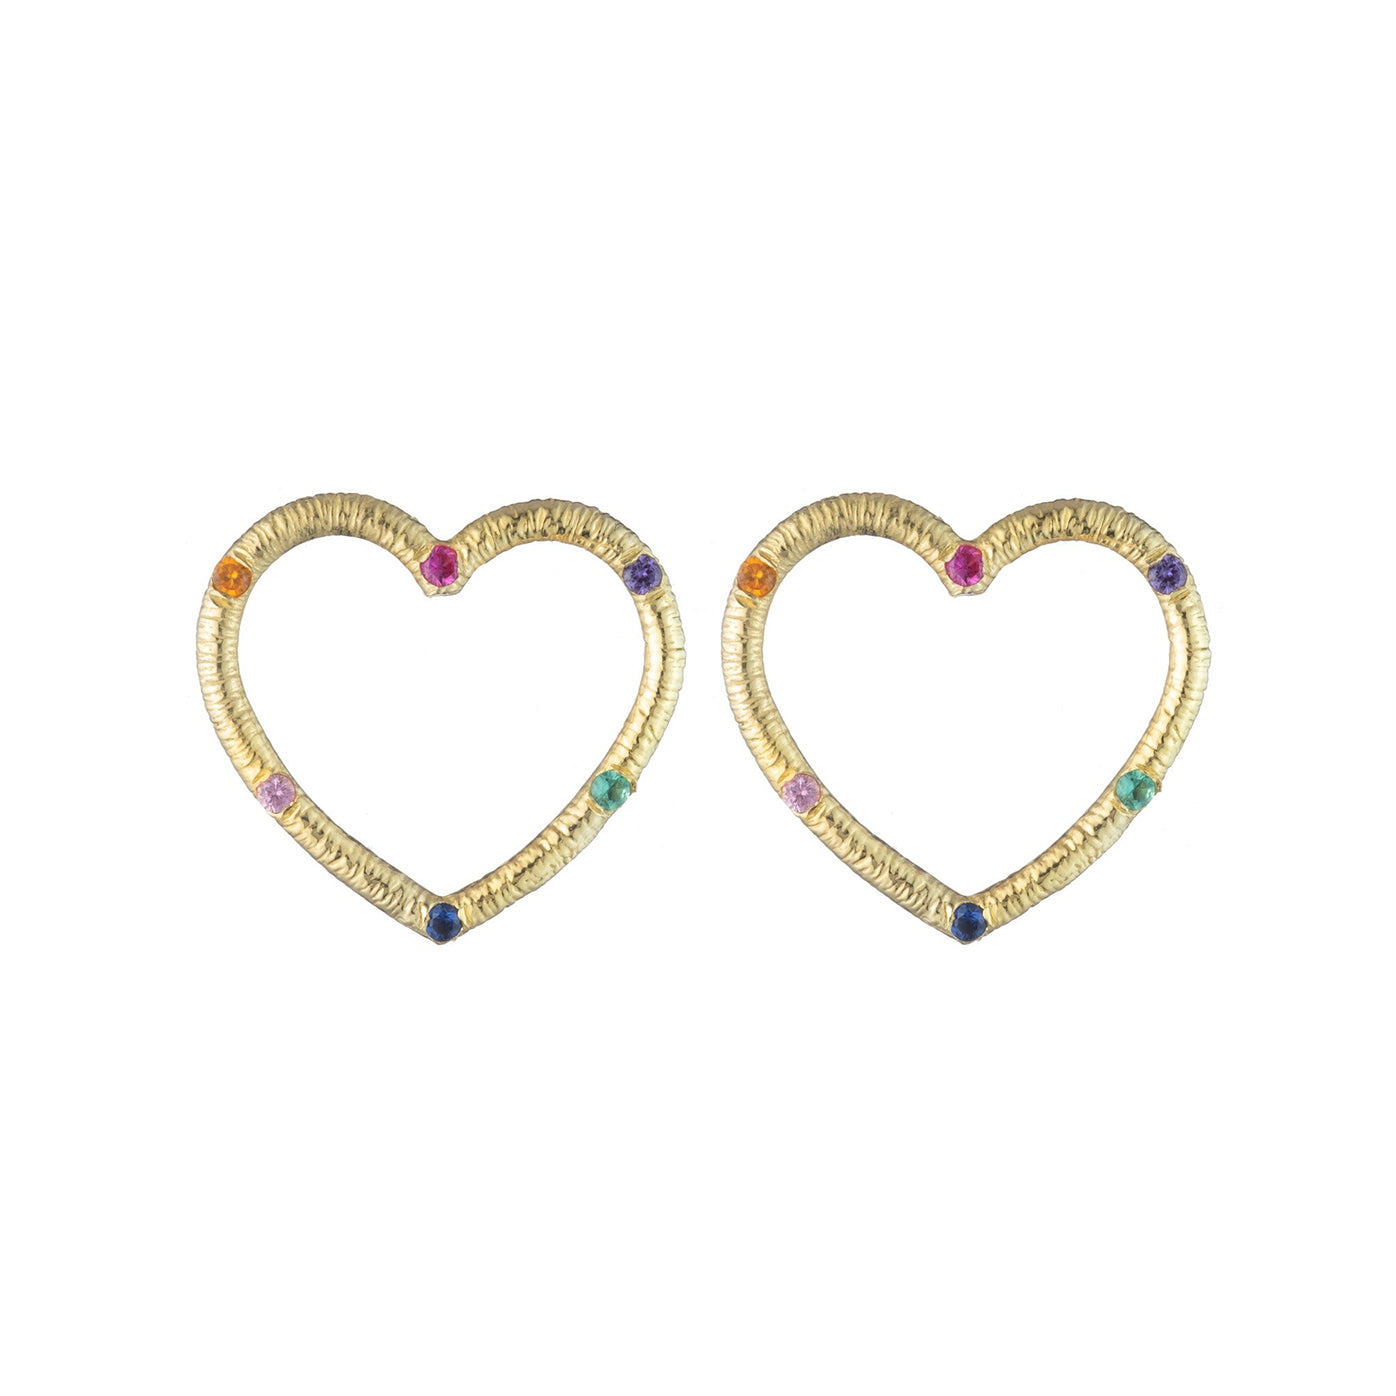 Medium Textured Heart Stud Earrings with Precious Gemstones